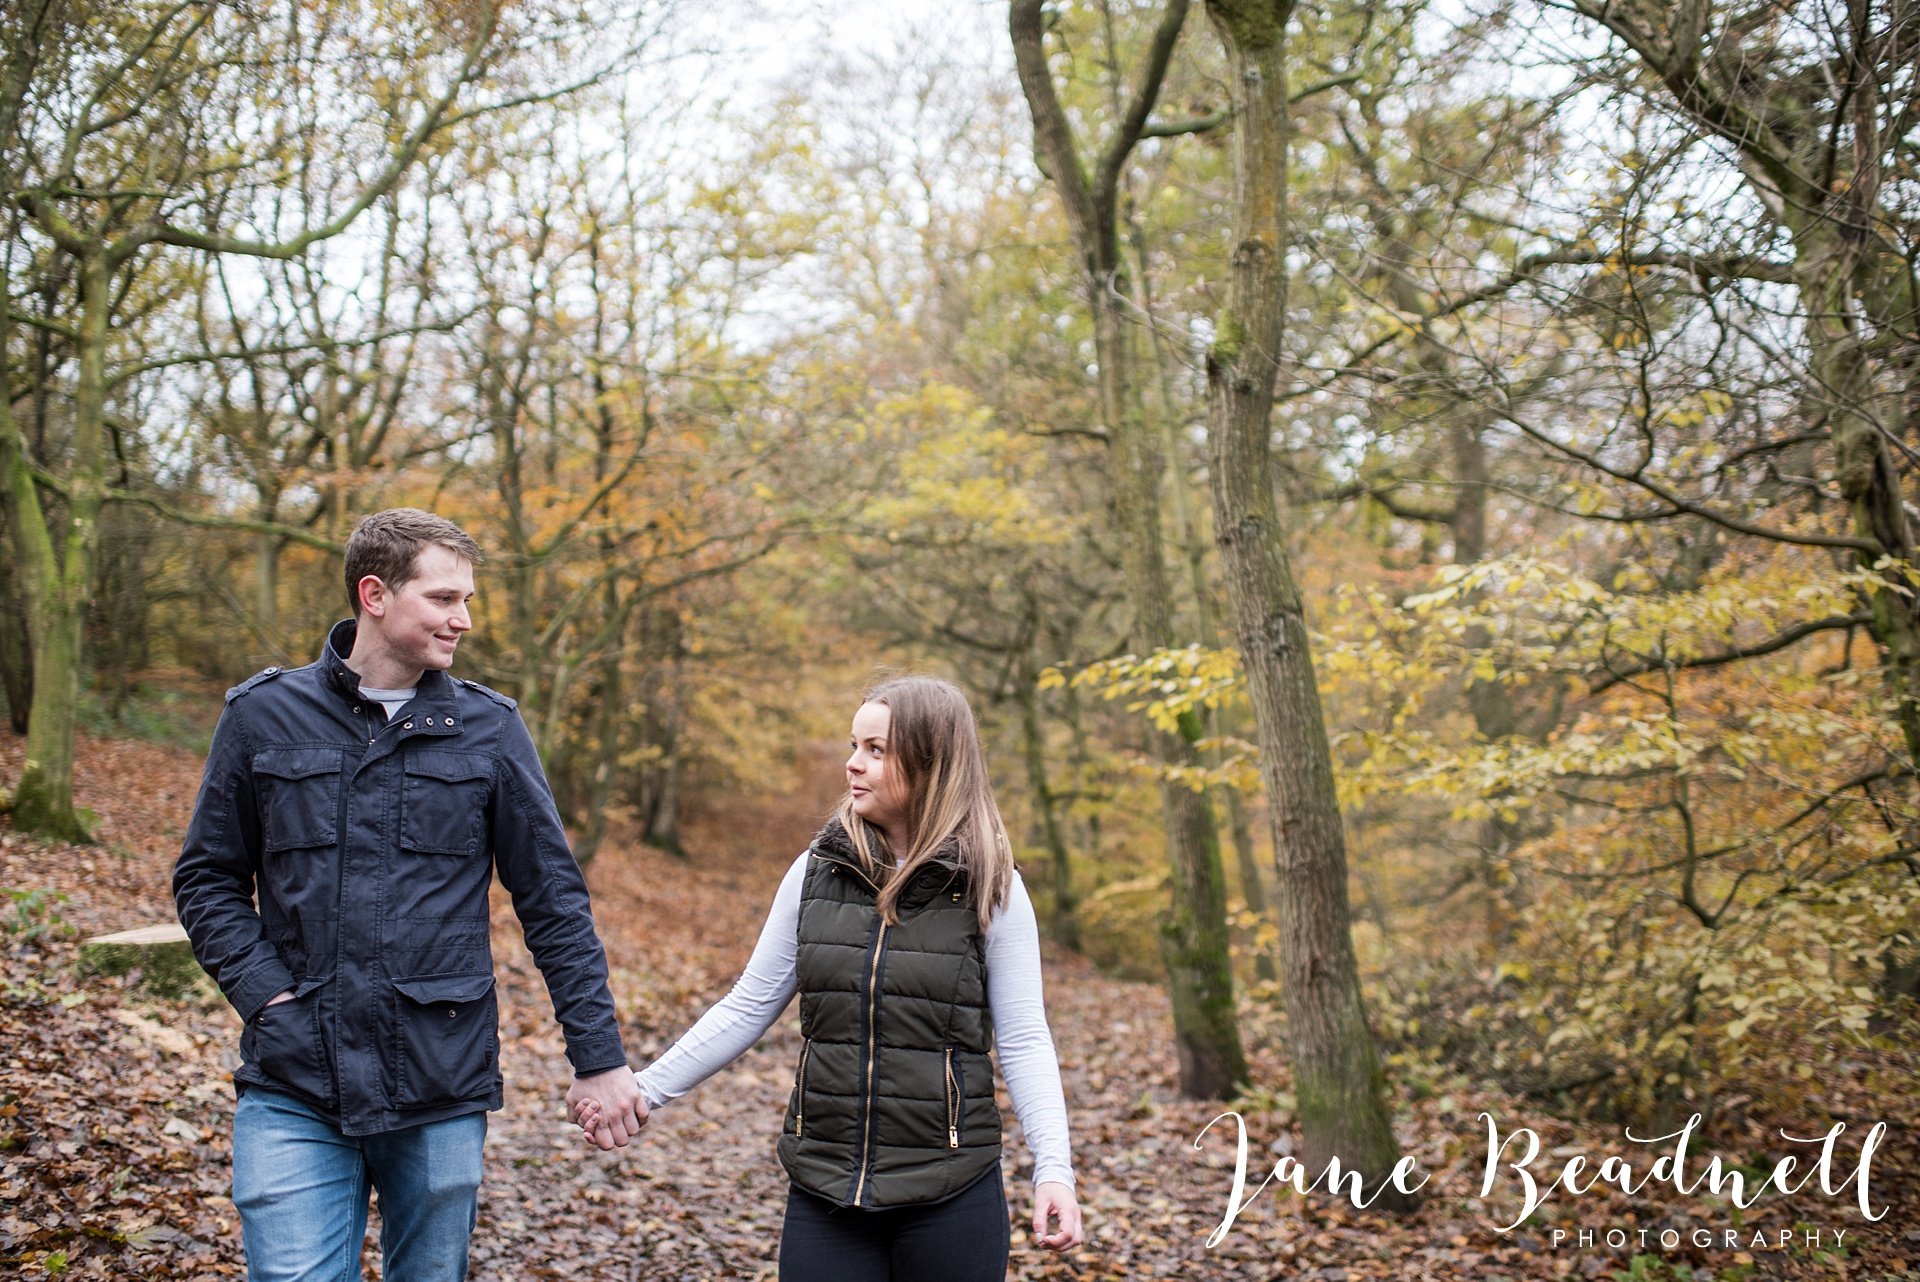 engagement-shoot-yorkshire-wedding-photographer-jane-beadnell-photography-uk-and-destination-wedding-photographer-engagement-shoot_0042